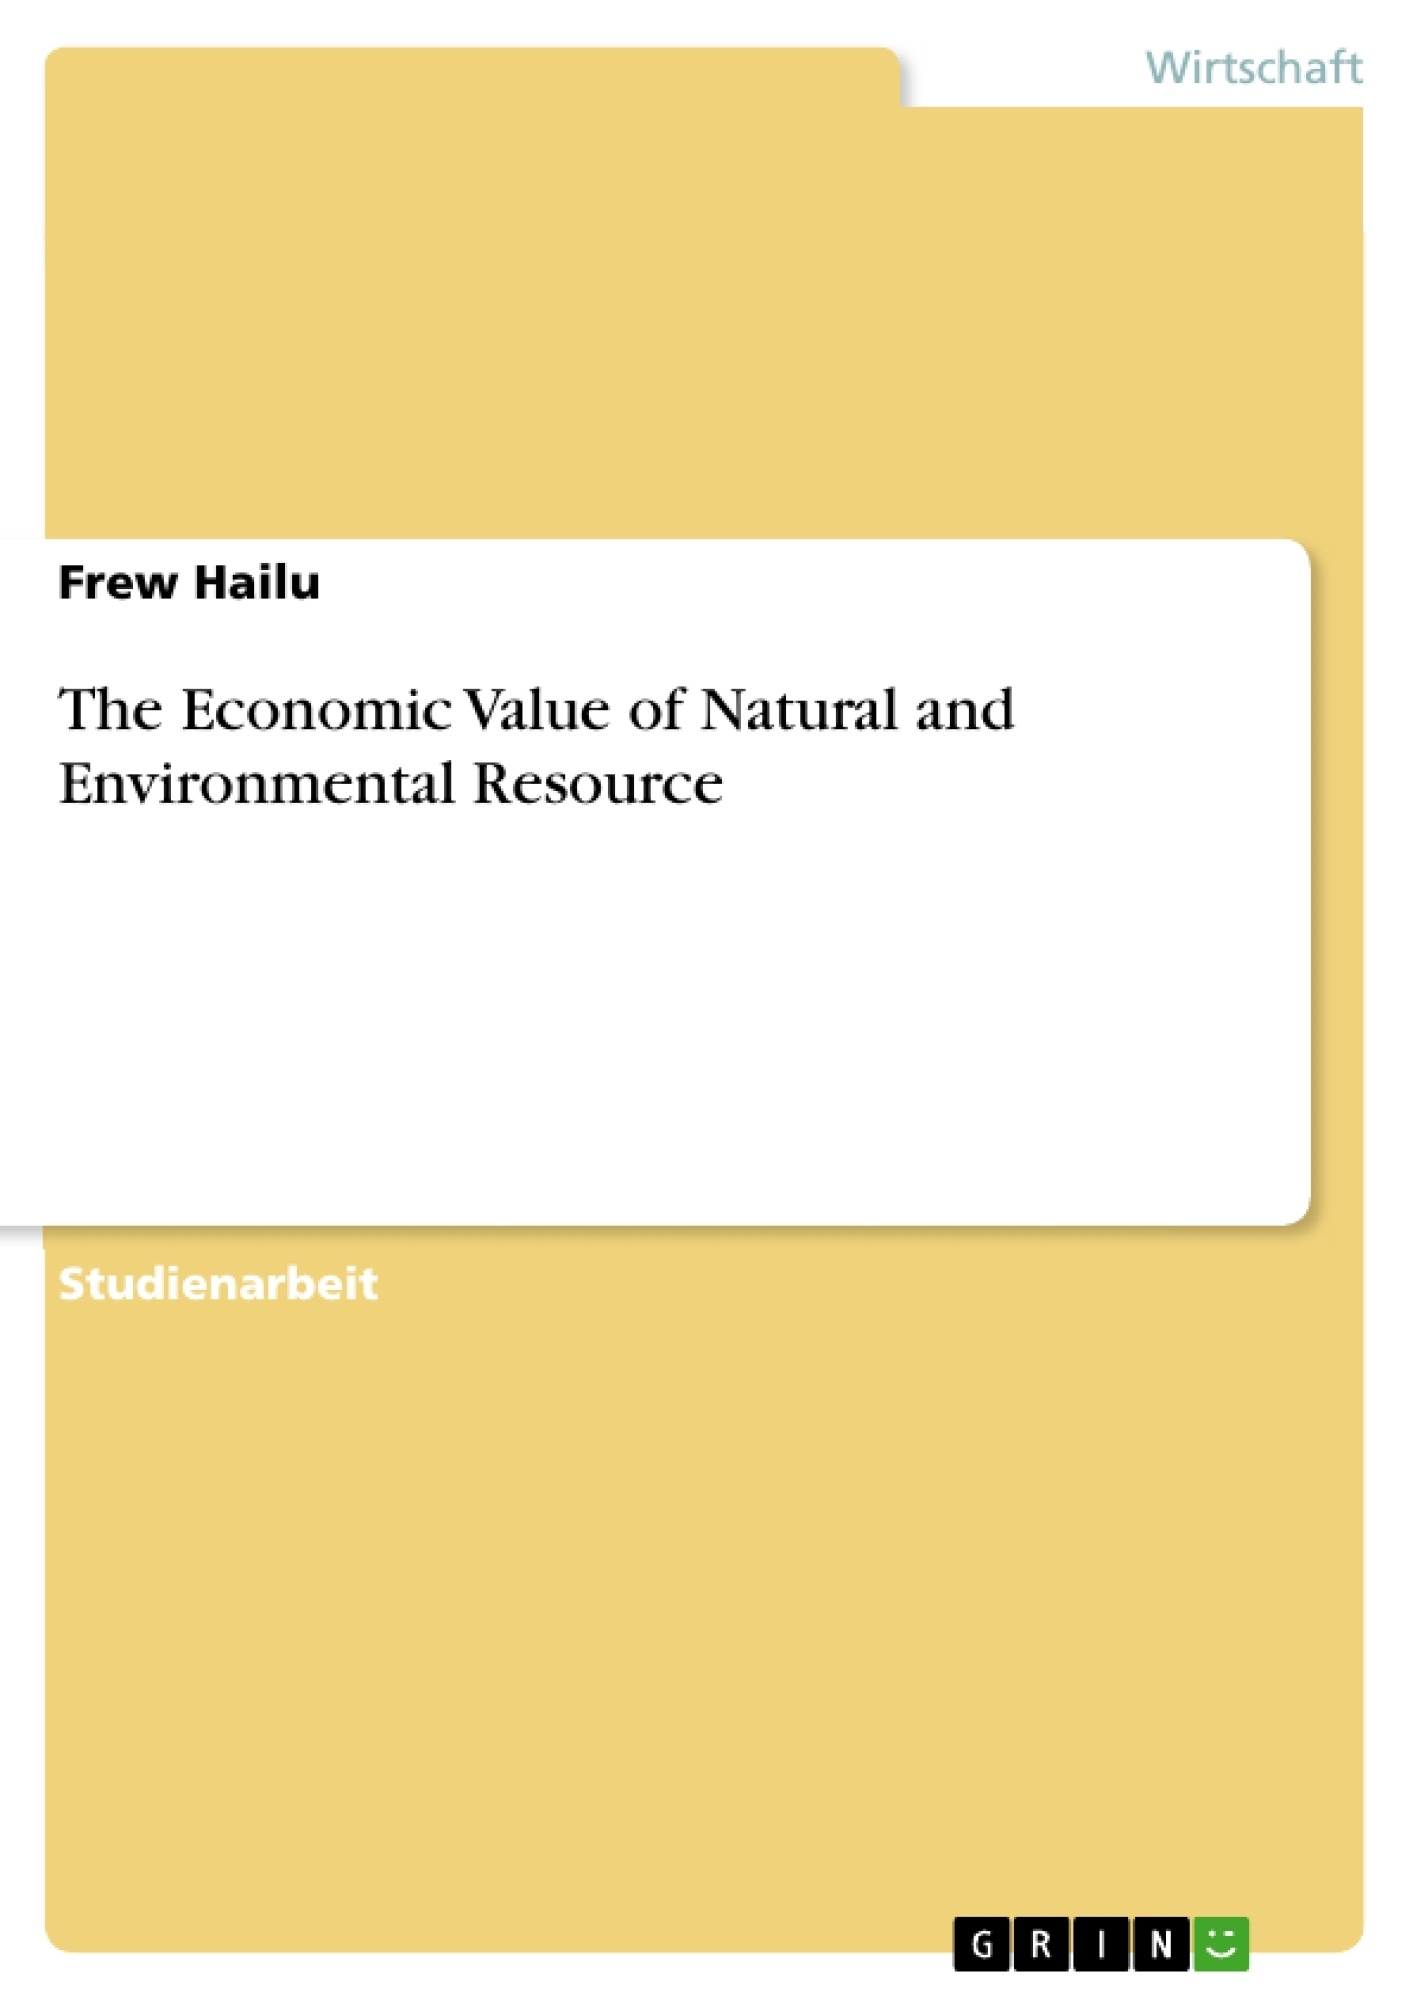 Titel: The Economic Value of Natural and Environmental Resource